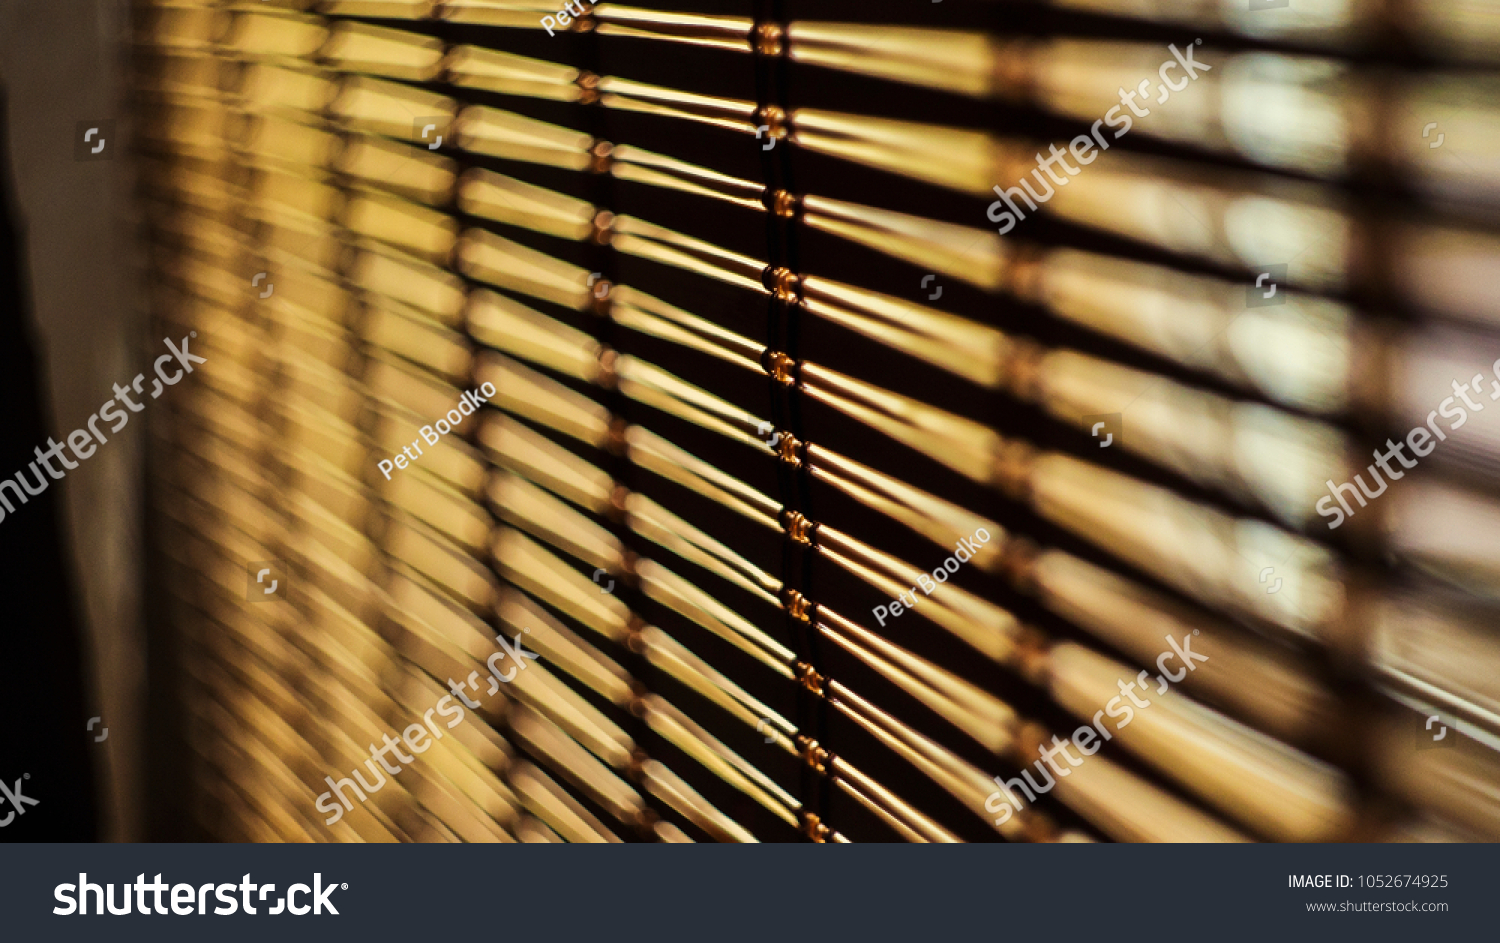 Schalosien Hamburg Jalousie Bamboo House Stock Photo Edit Now 1052674925 Shutterstock